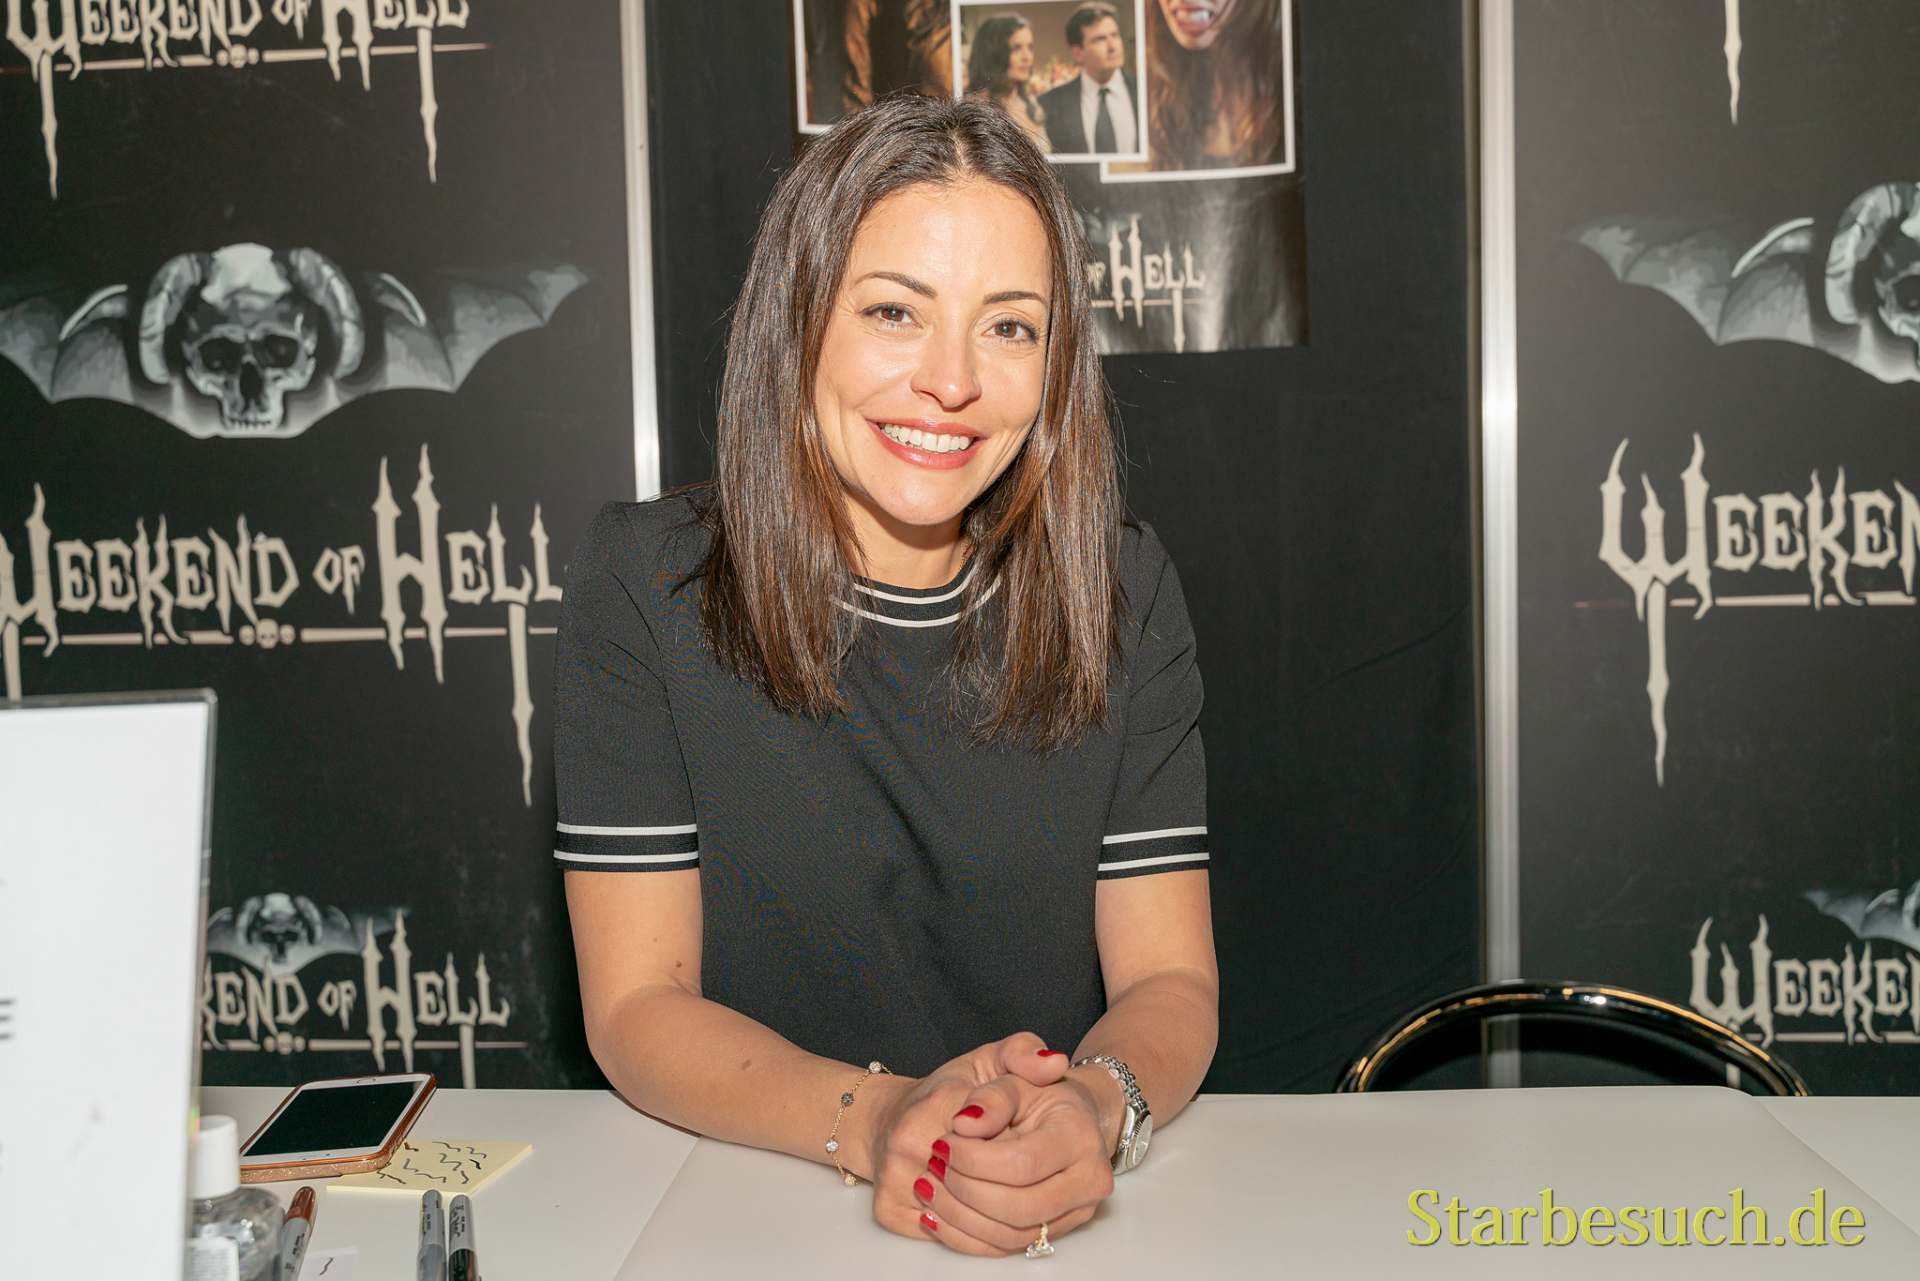 Emmanuelle Vaugier - Weekend of Hell SE 2019